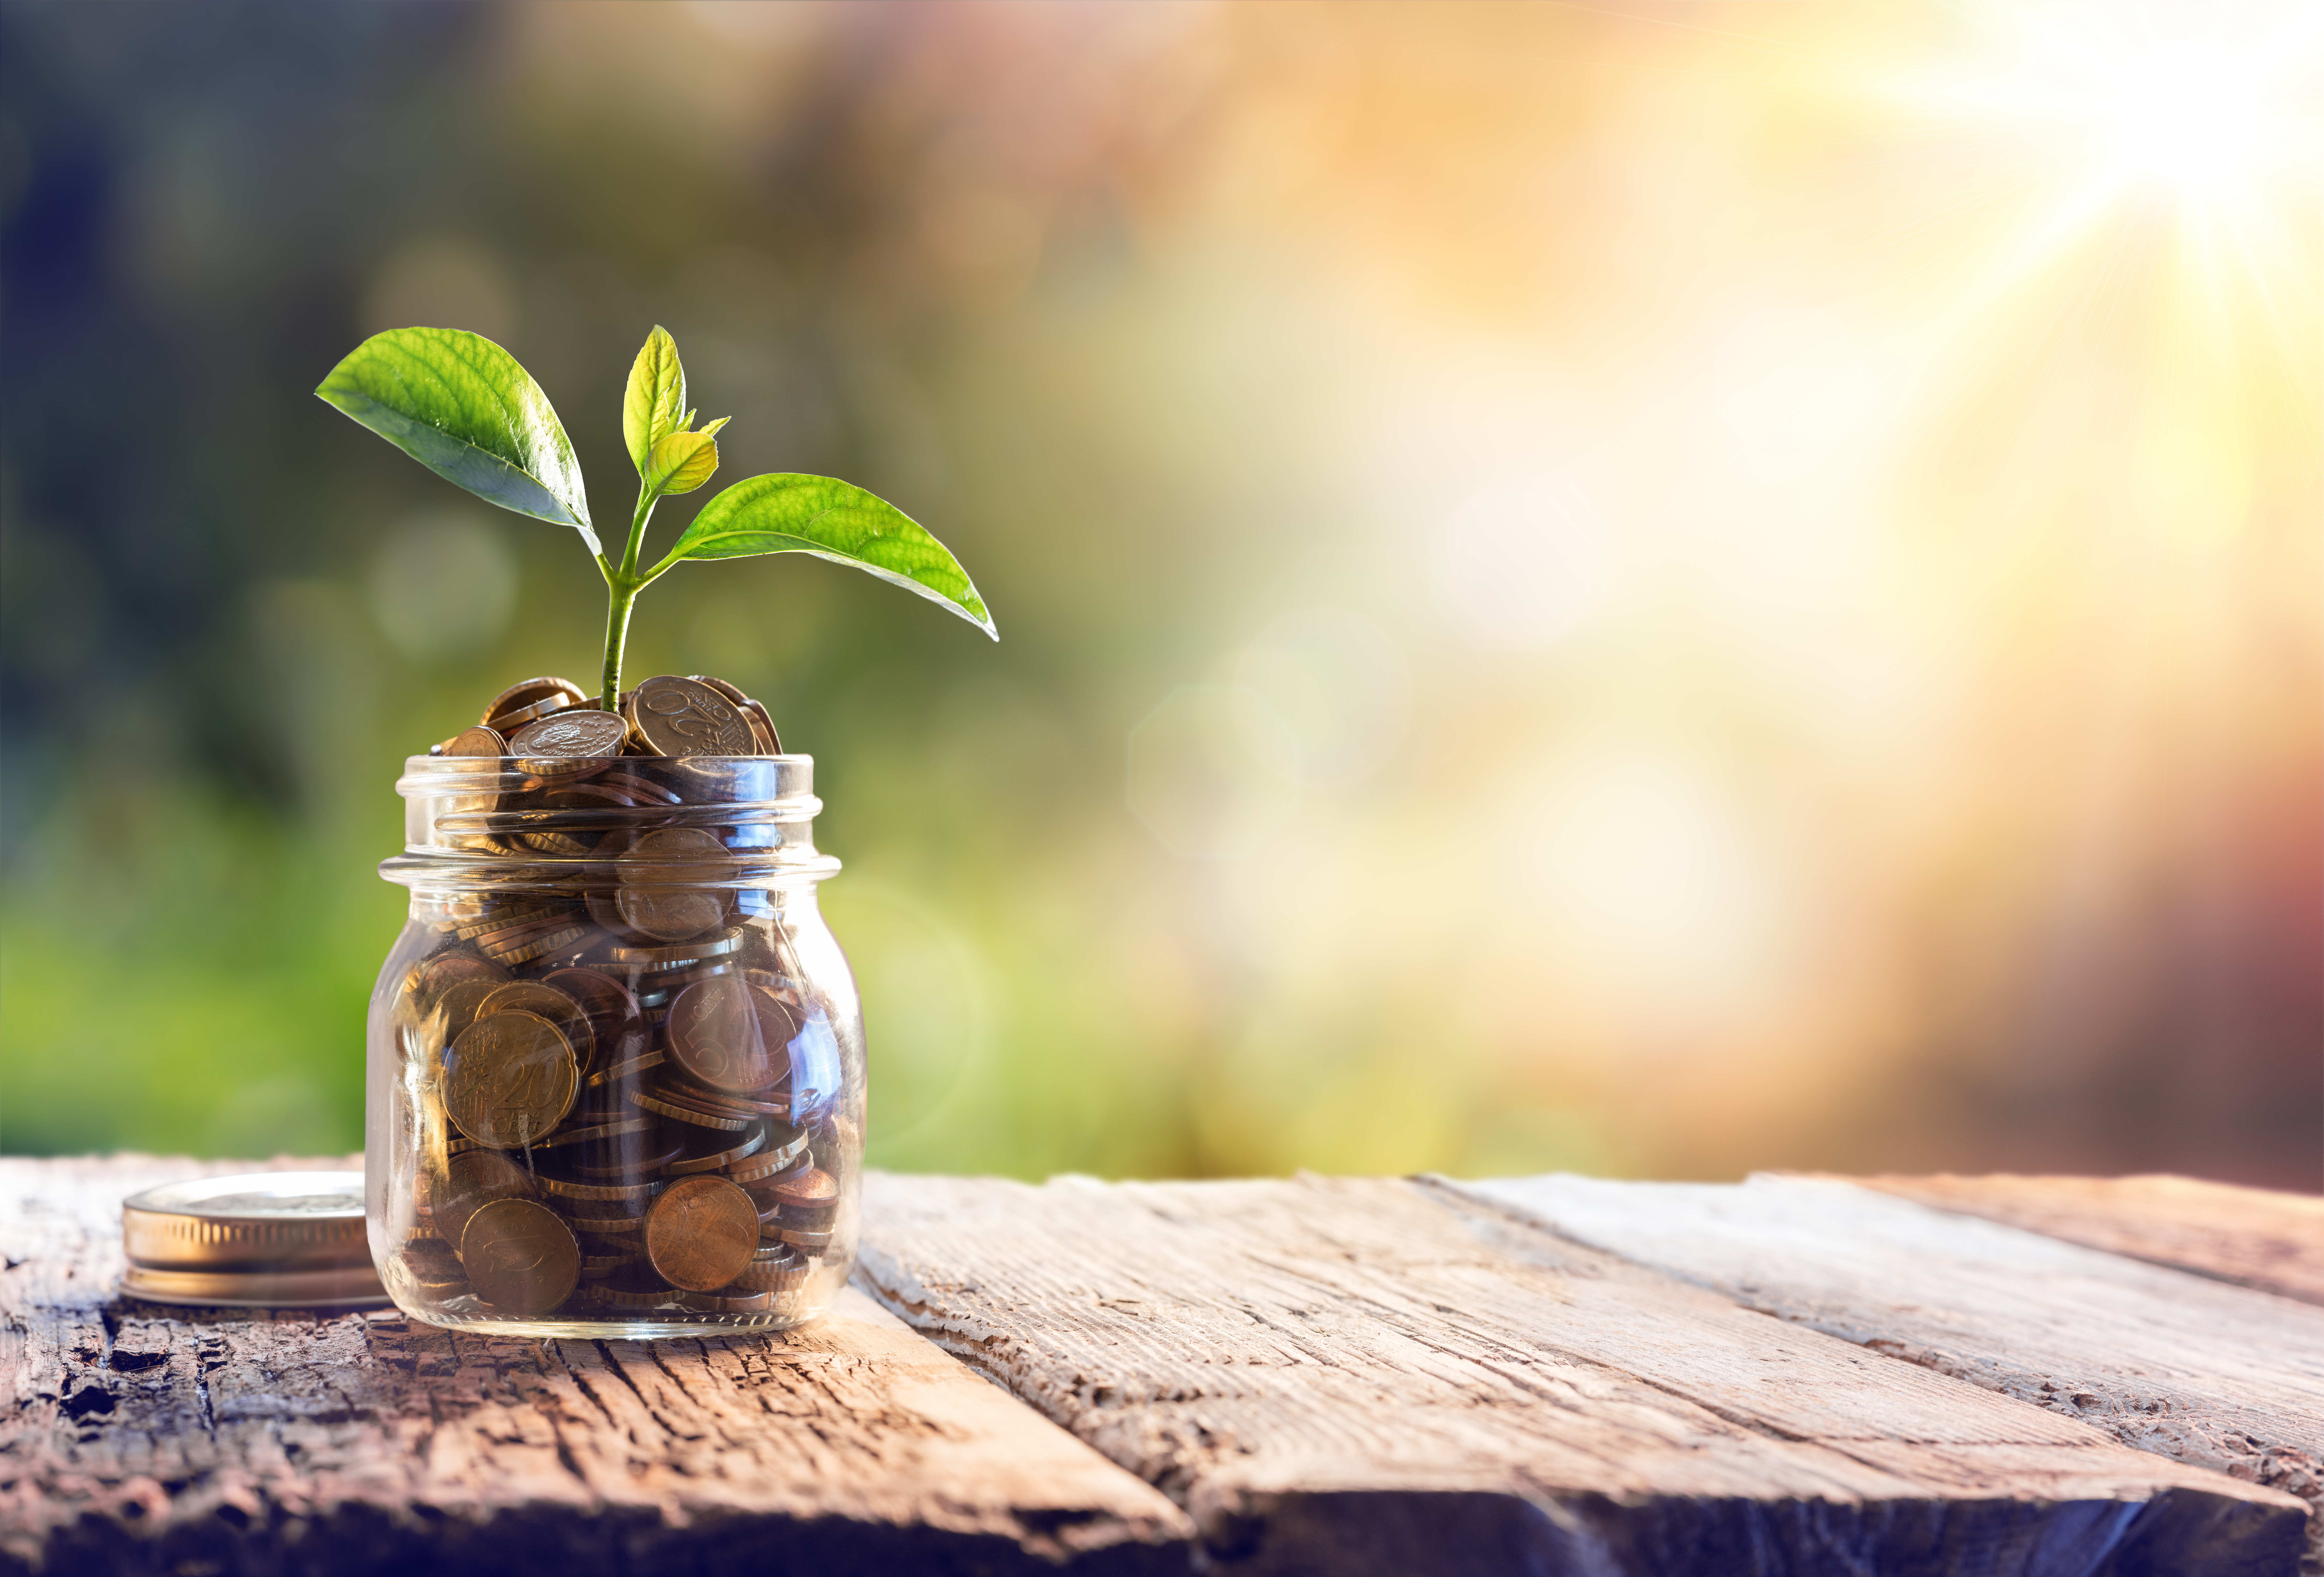 In Search Of The Safest Place To Plant A Fast Growing Money Tree